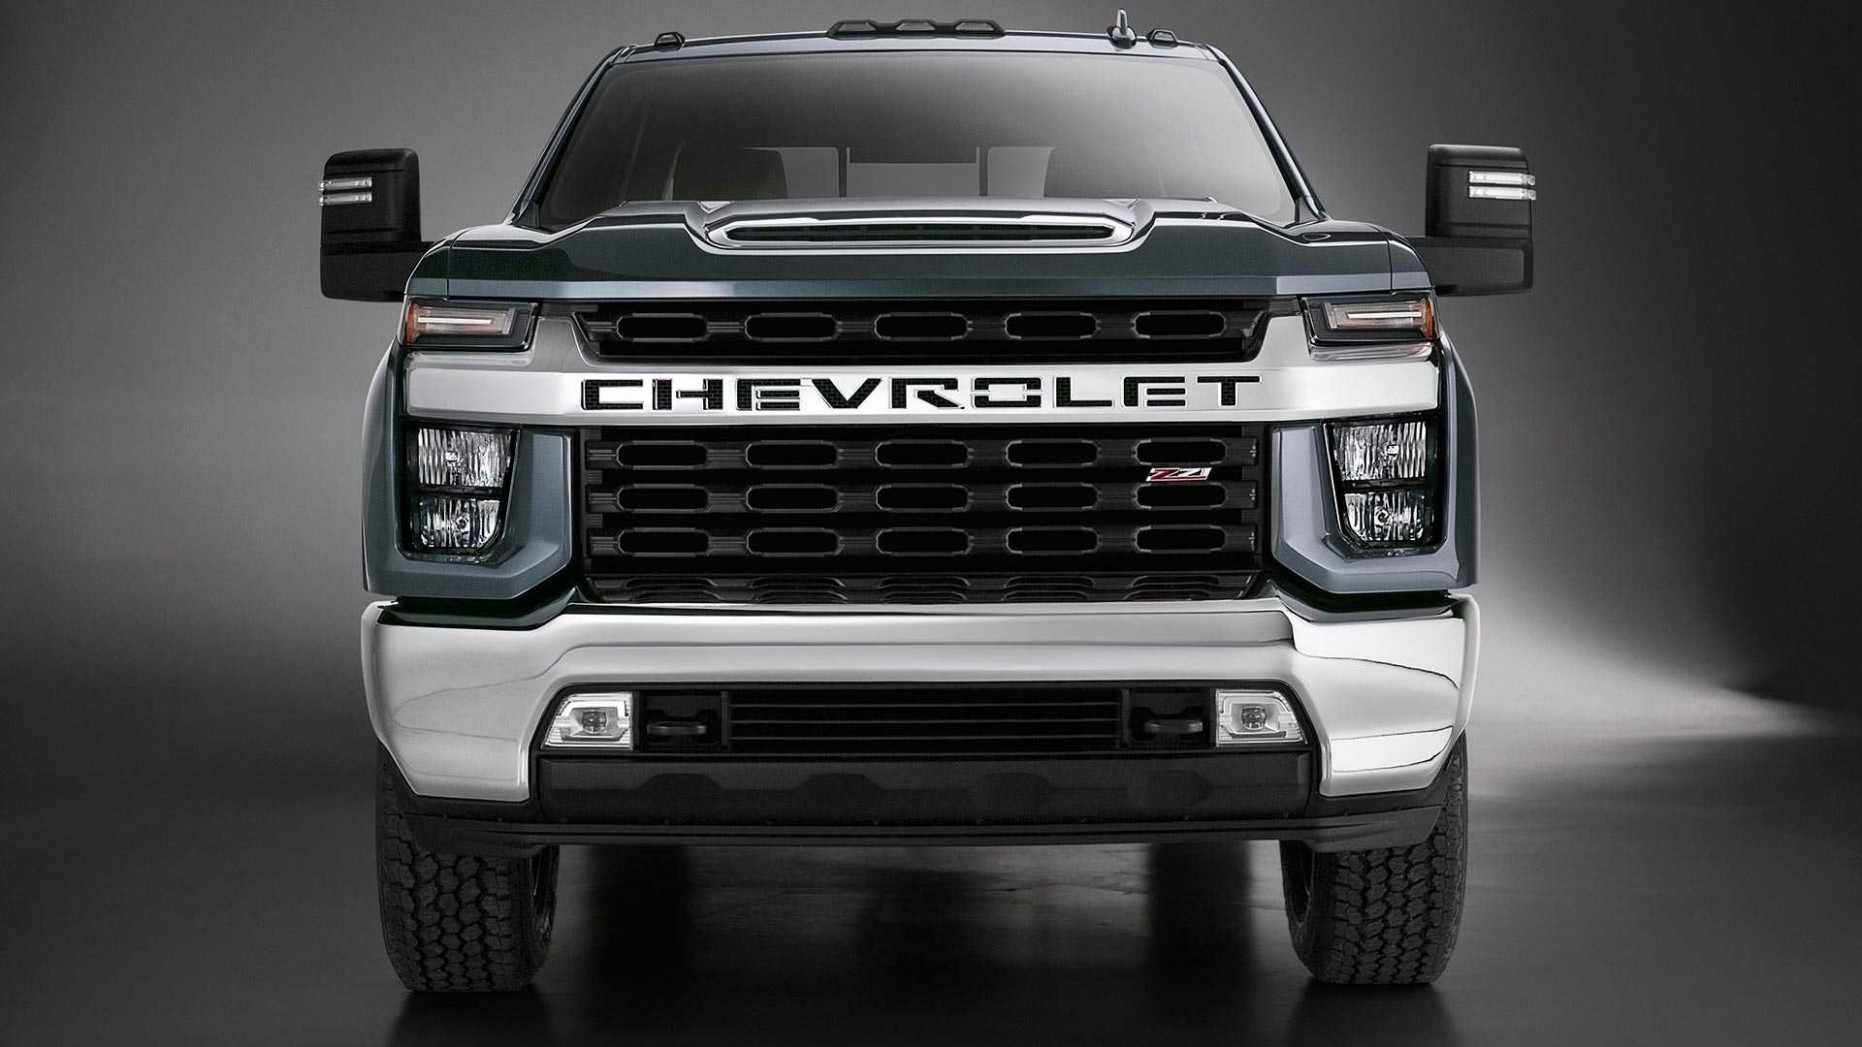 8 Chevy Silverado HD Unveiled, Getting New V8 And Gearbox